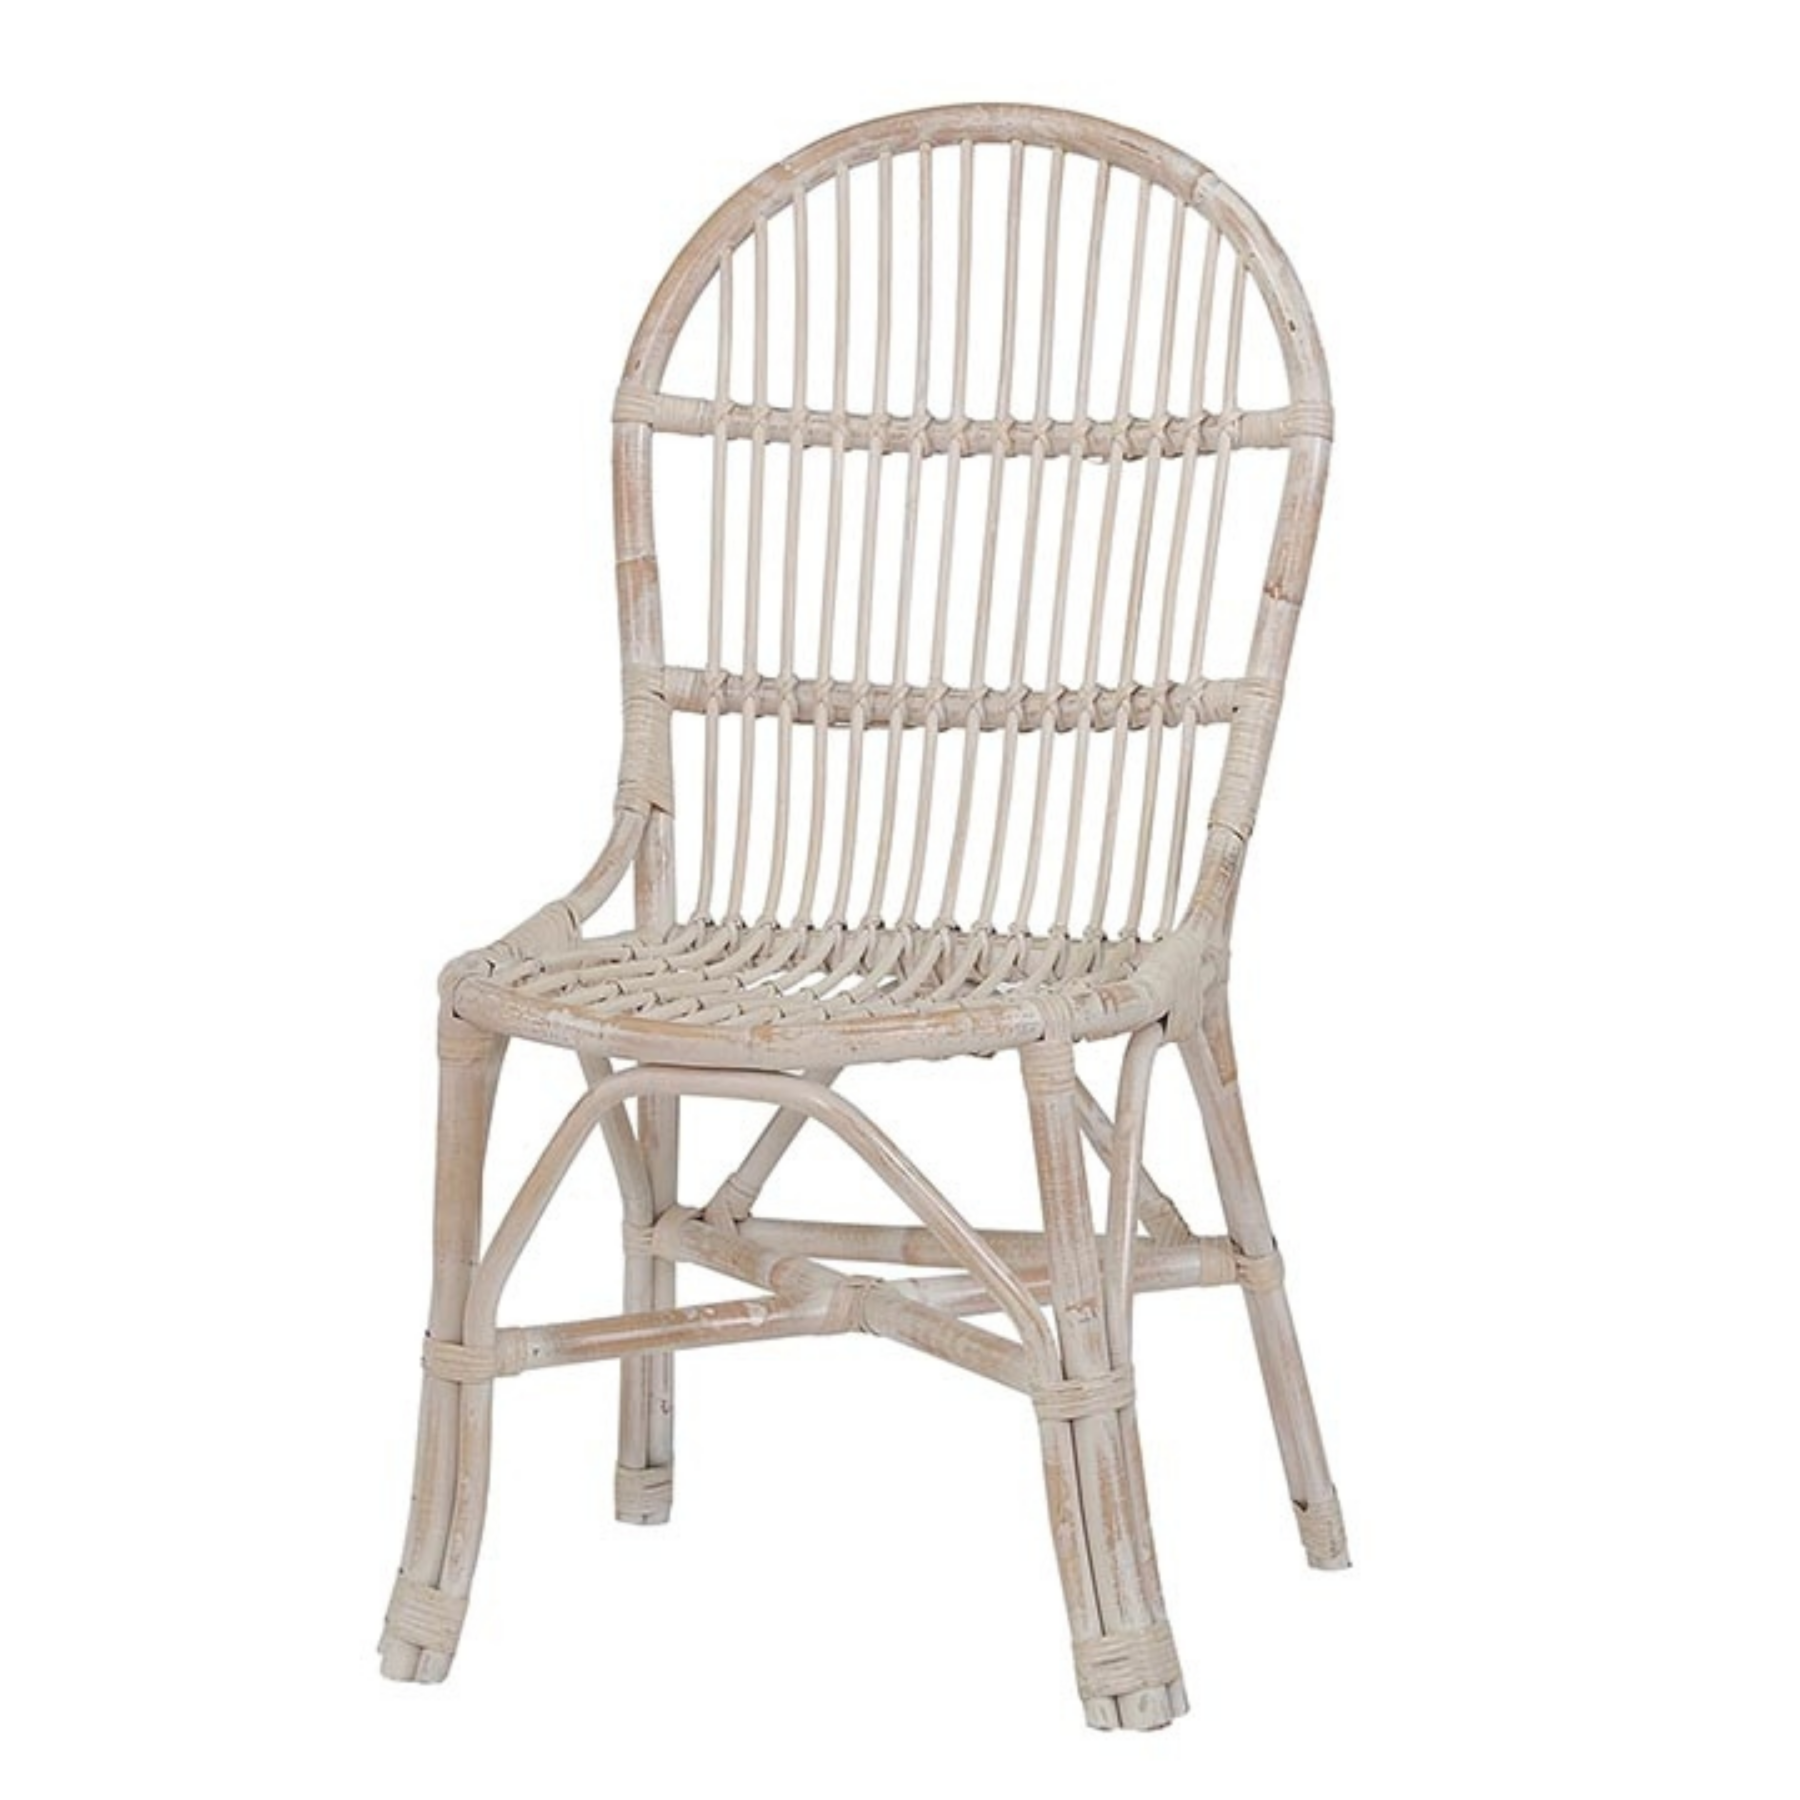 White rattan dining chair